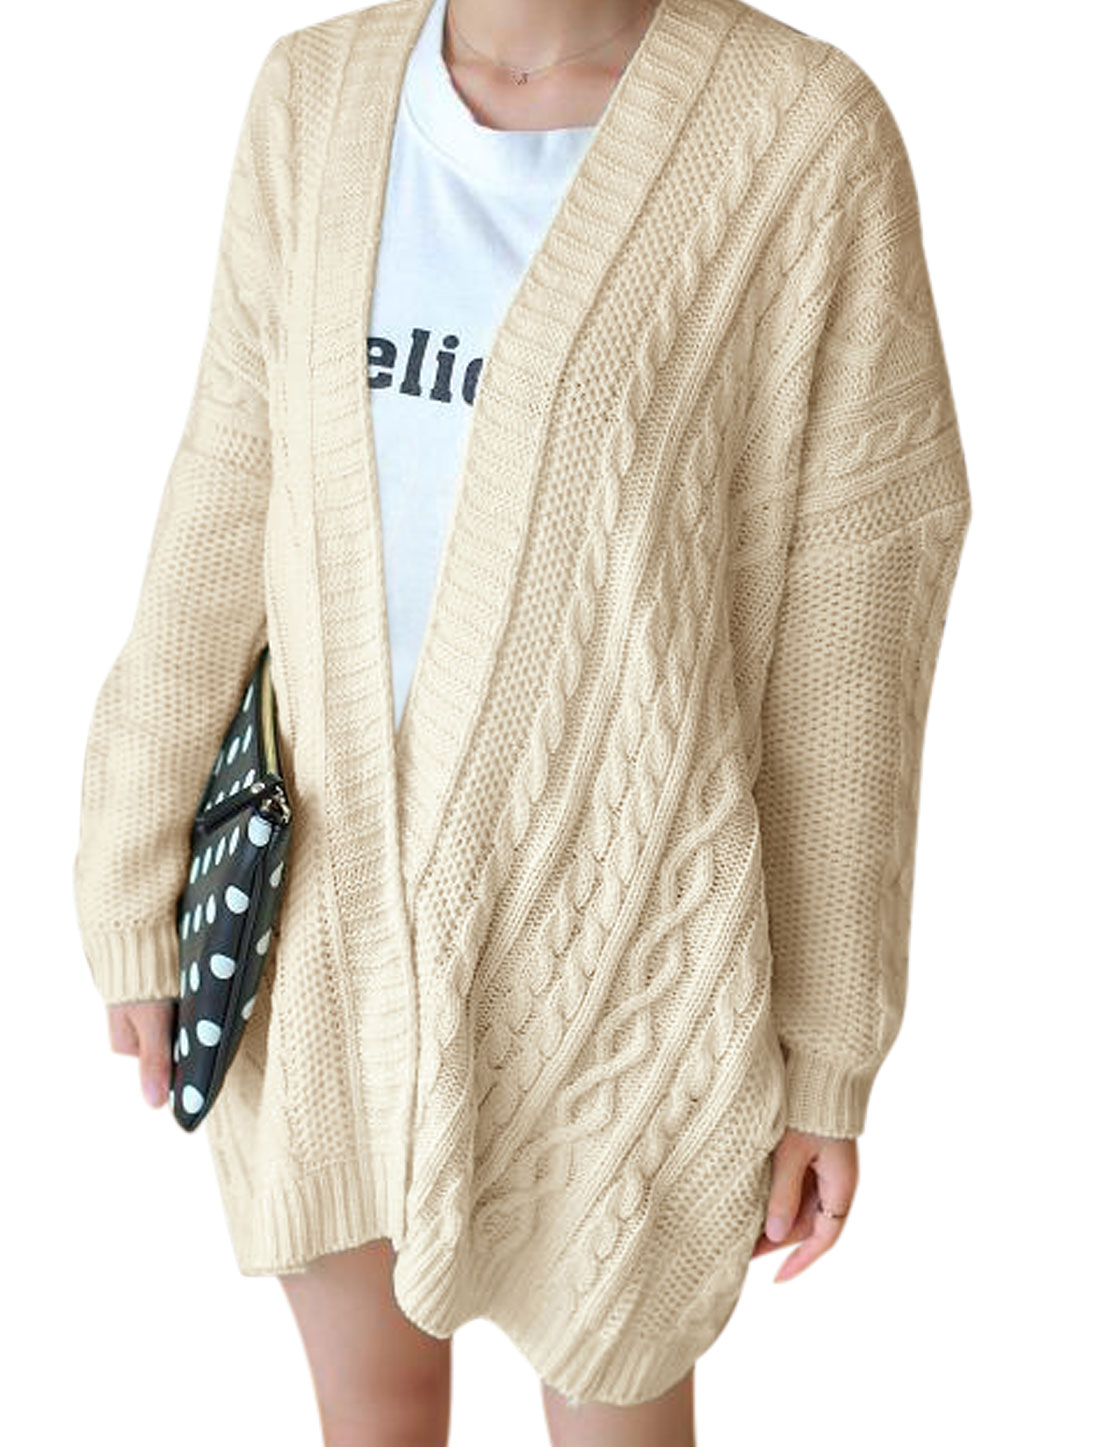 Women Batwing Sleeves Braided Design Tunic Cardigan Sweater Beige M